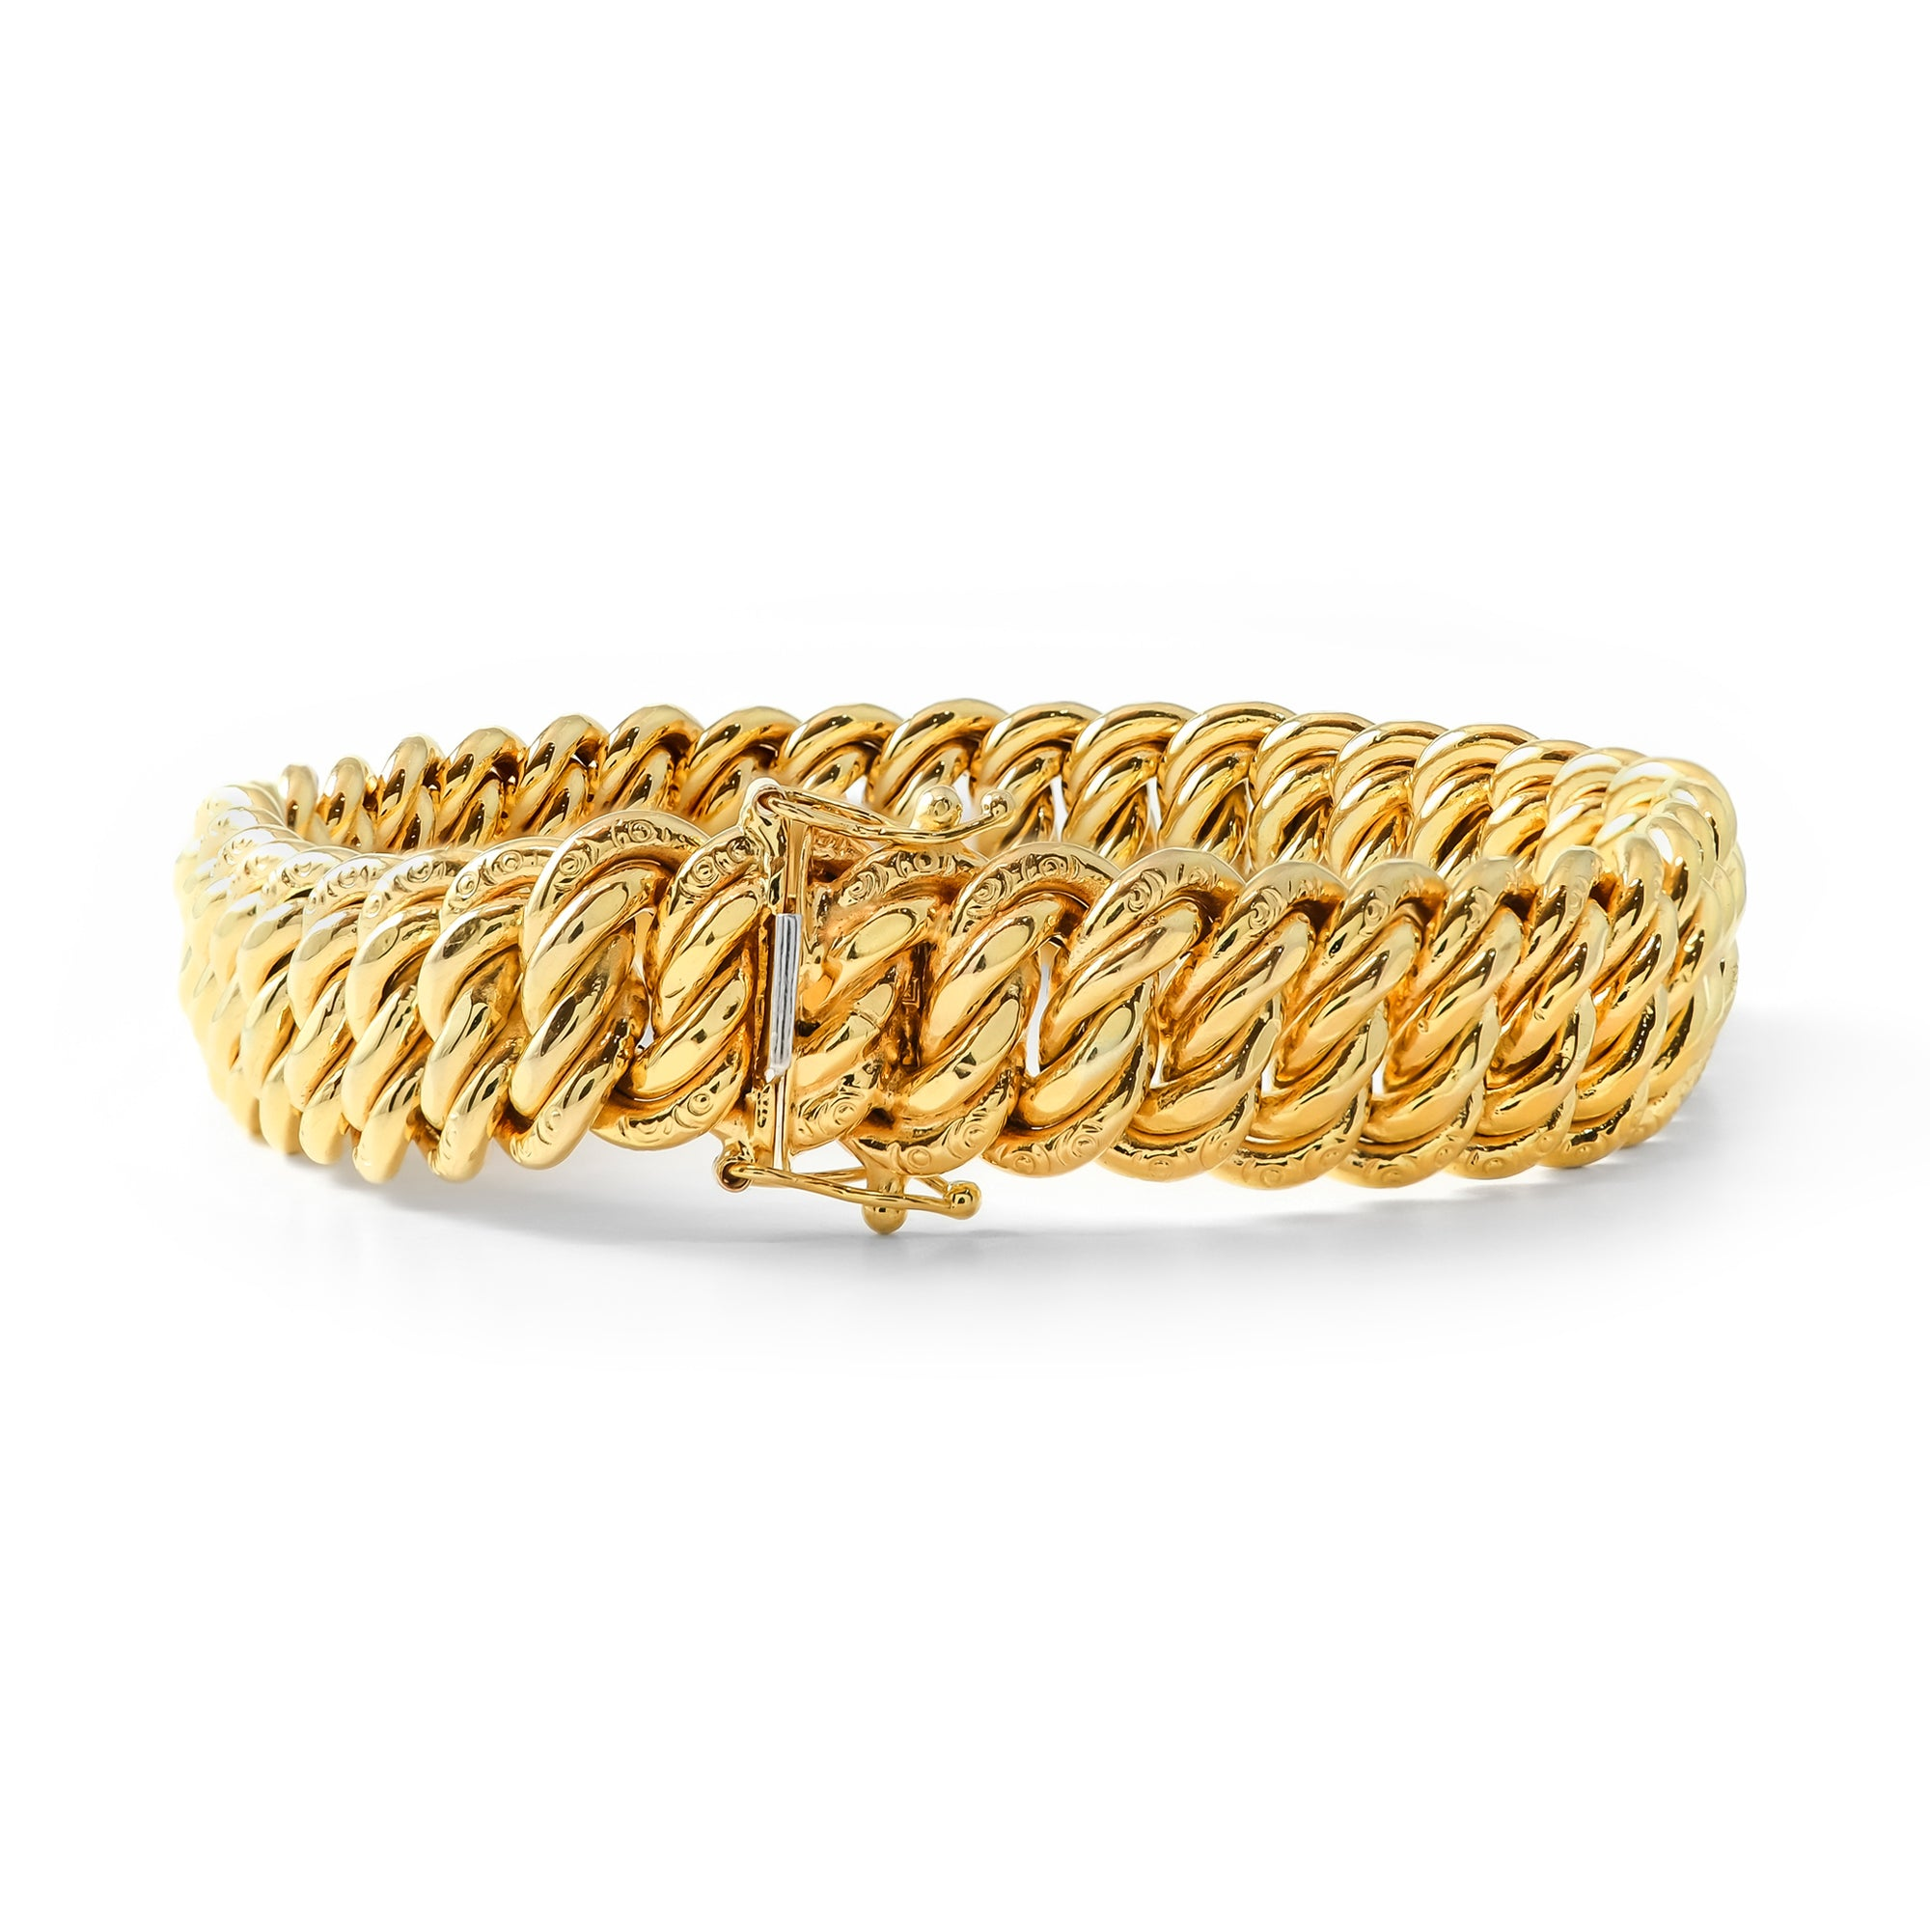 Vintage 9ct Yellow Gold Double Curb Bracelet